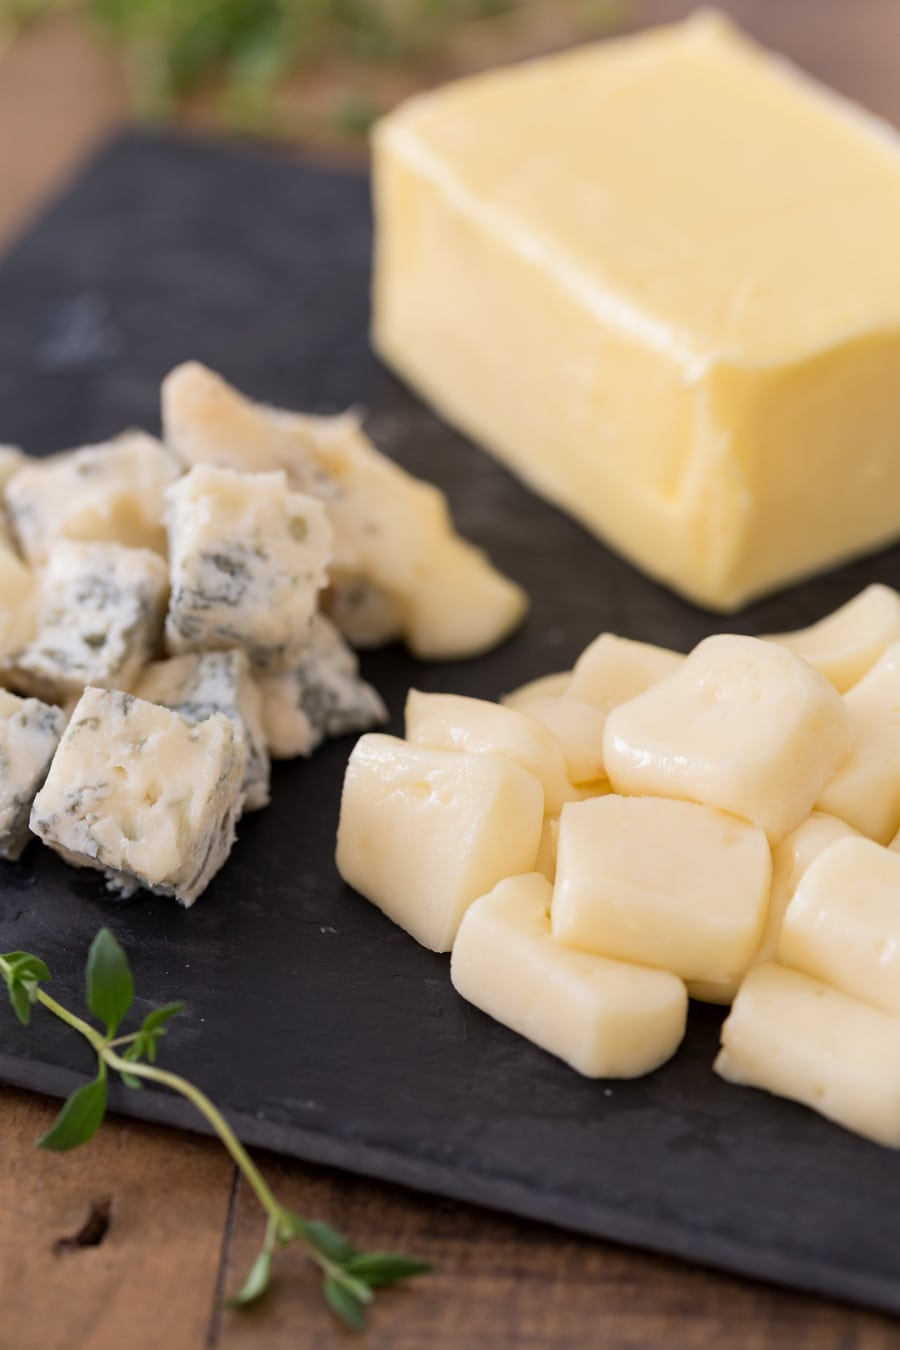 Cubes of taleggio and gorgonzola on a tray, butter in the background.